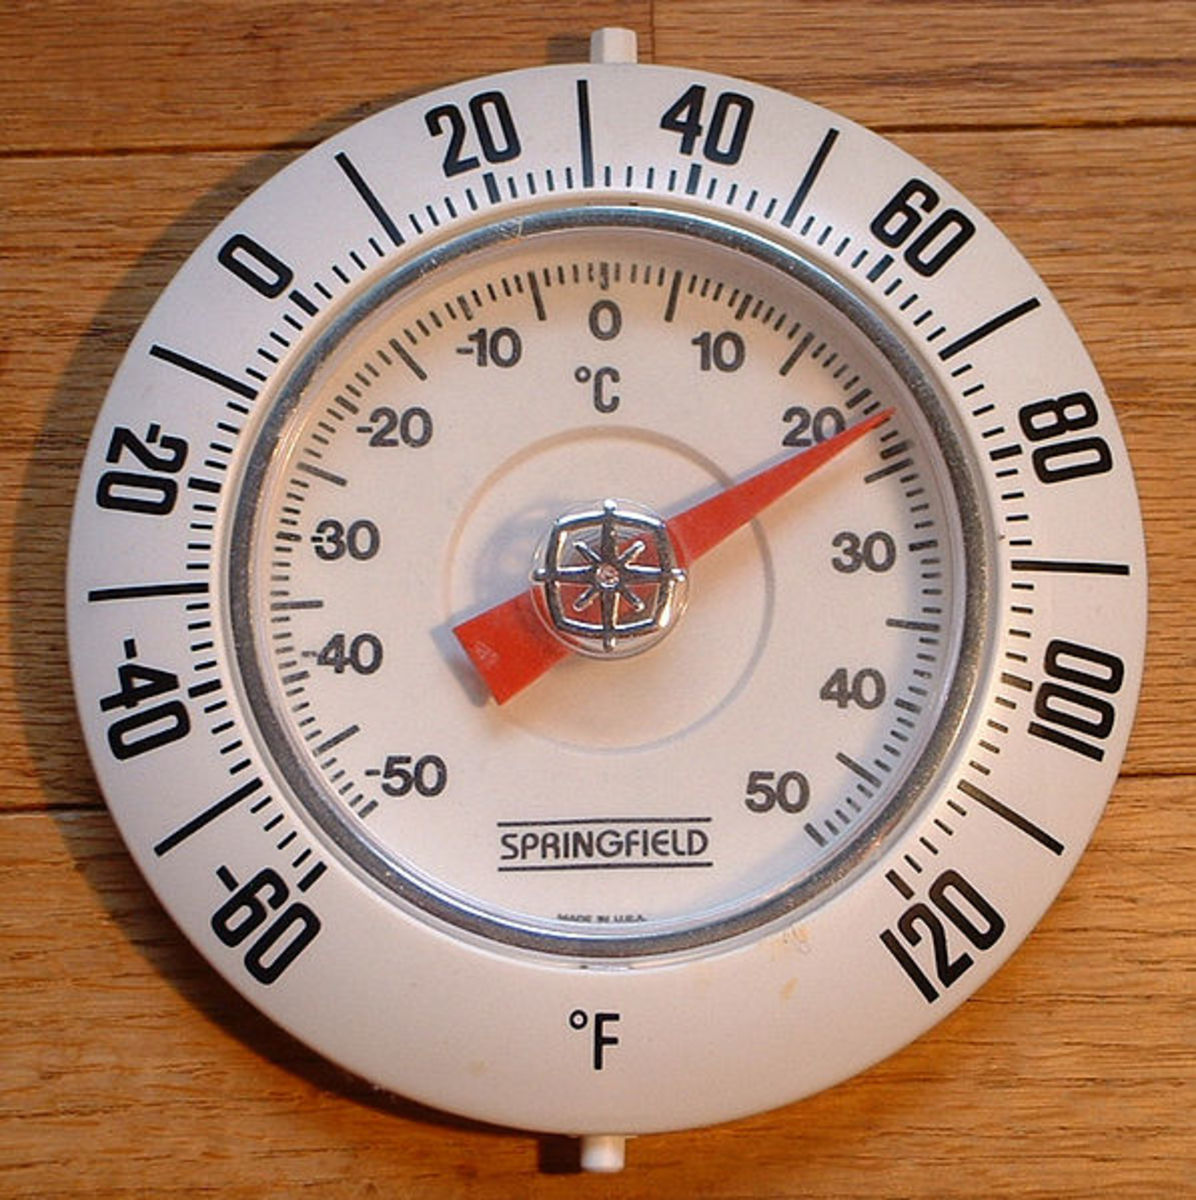 Use Your Right Brain To Convert Fahrenheit And Celsius